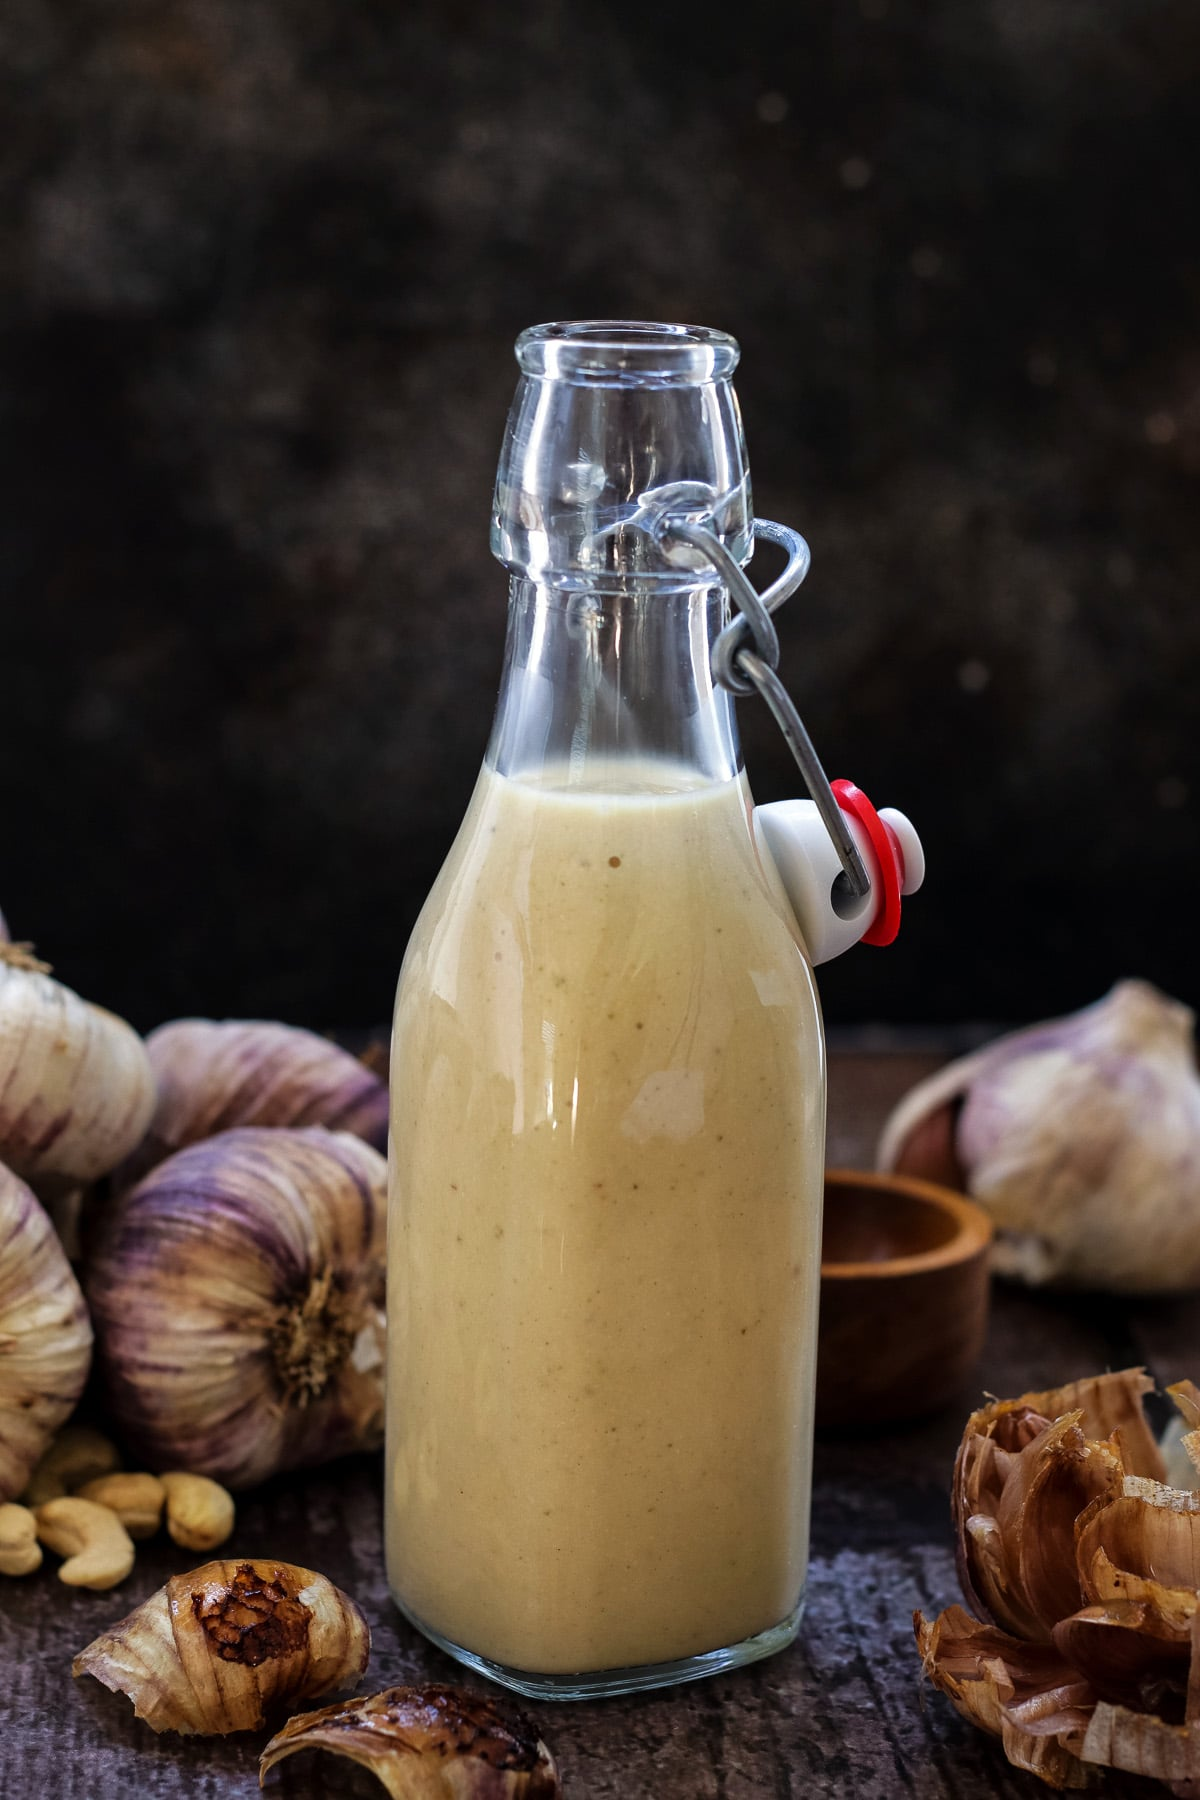 A bottle of roasted garlic sauce.